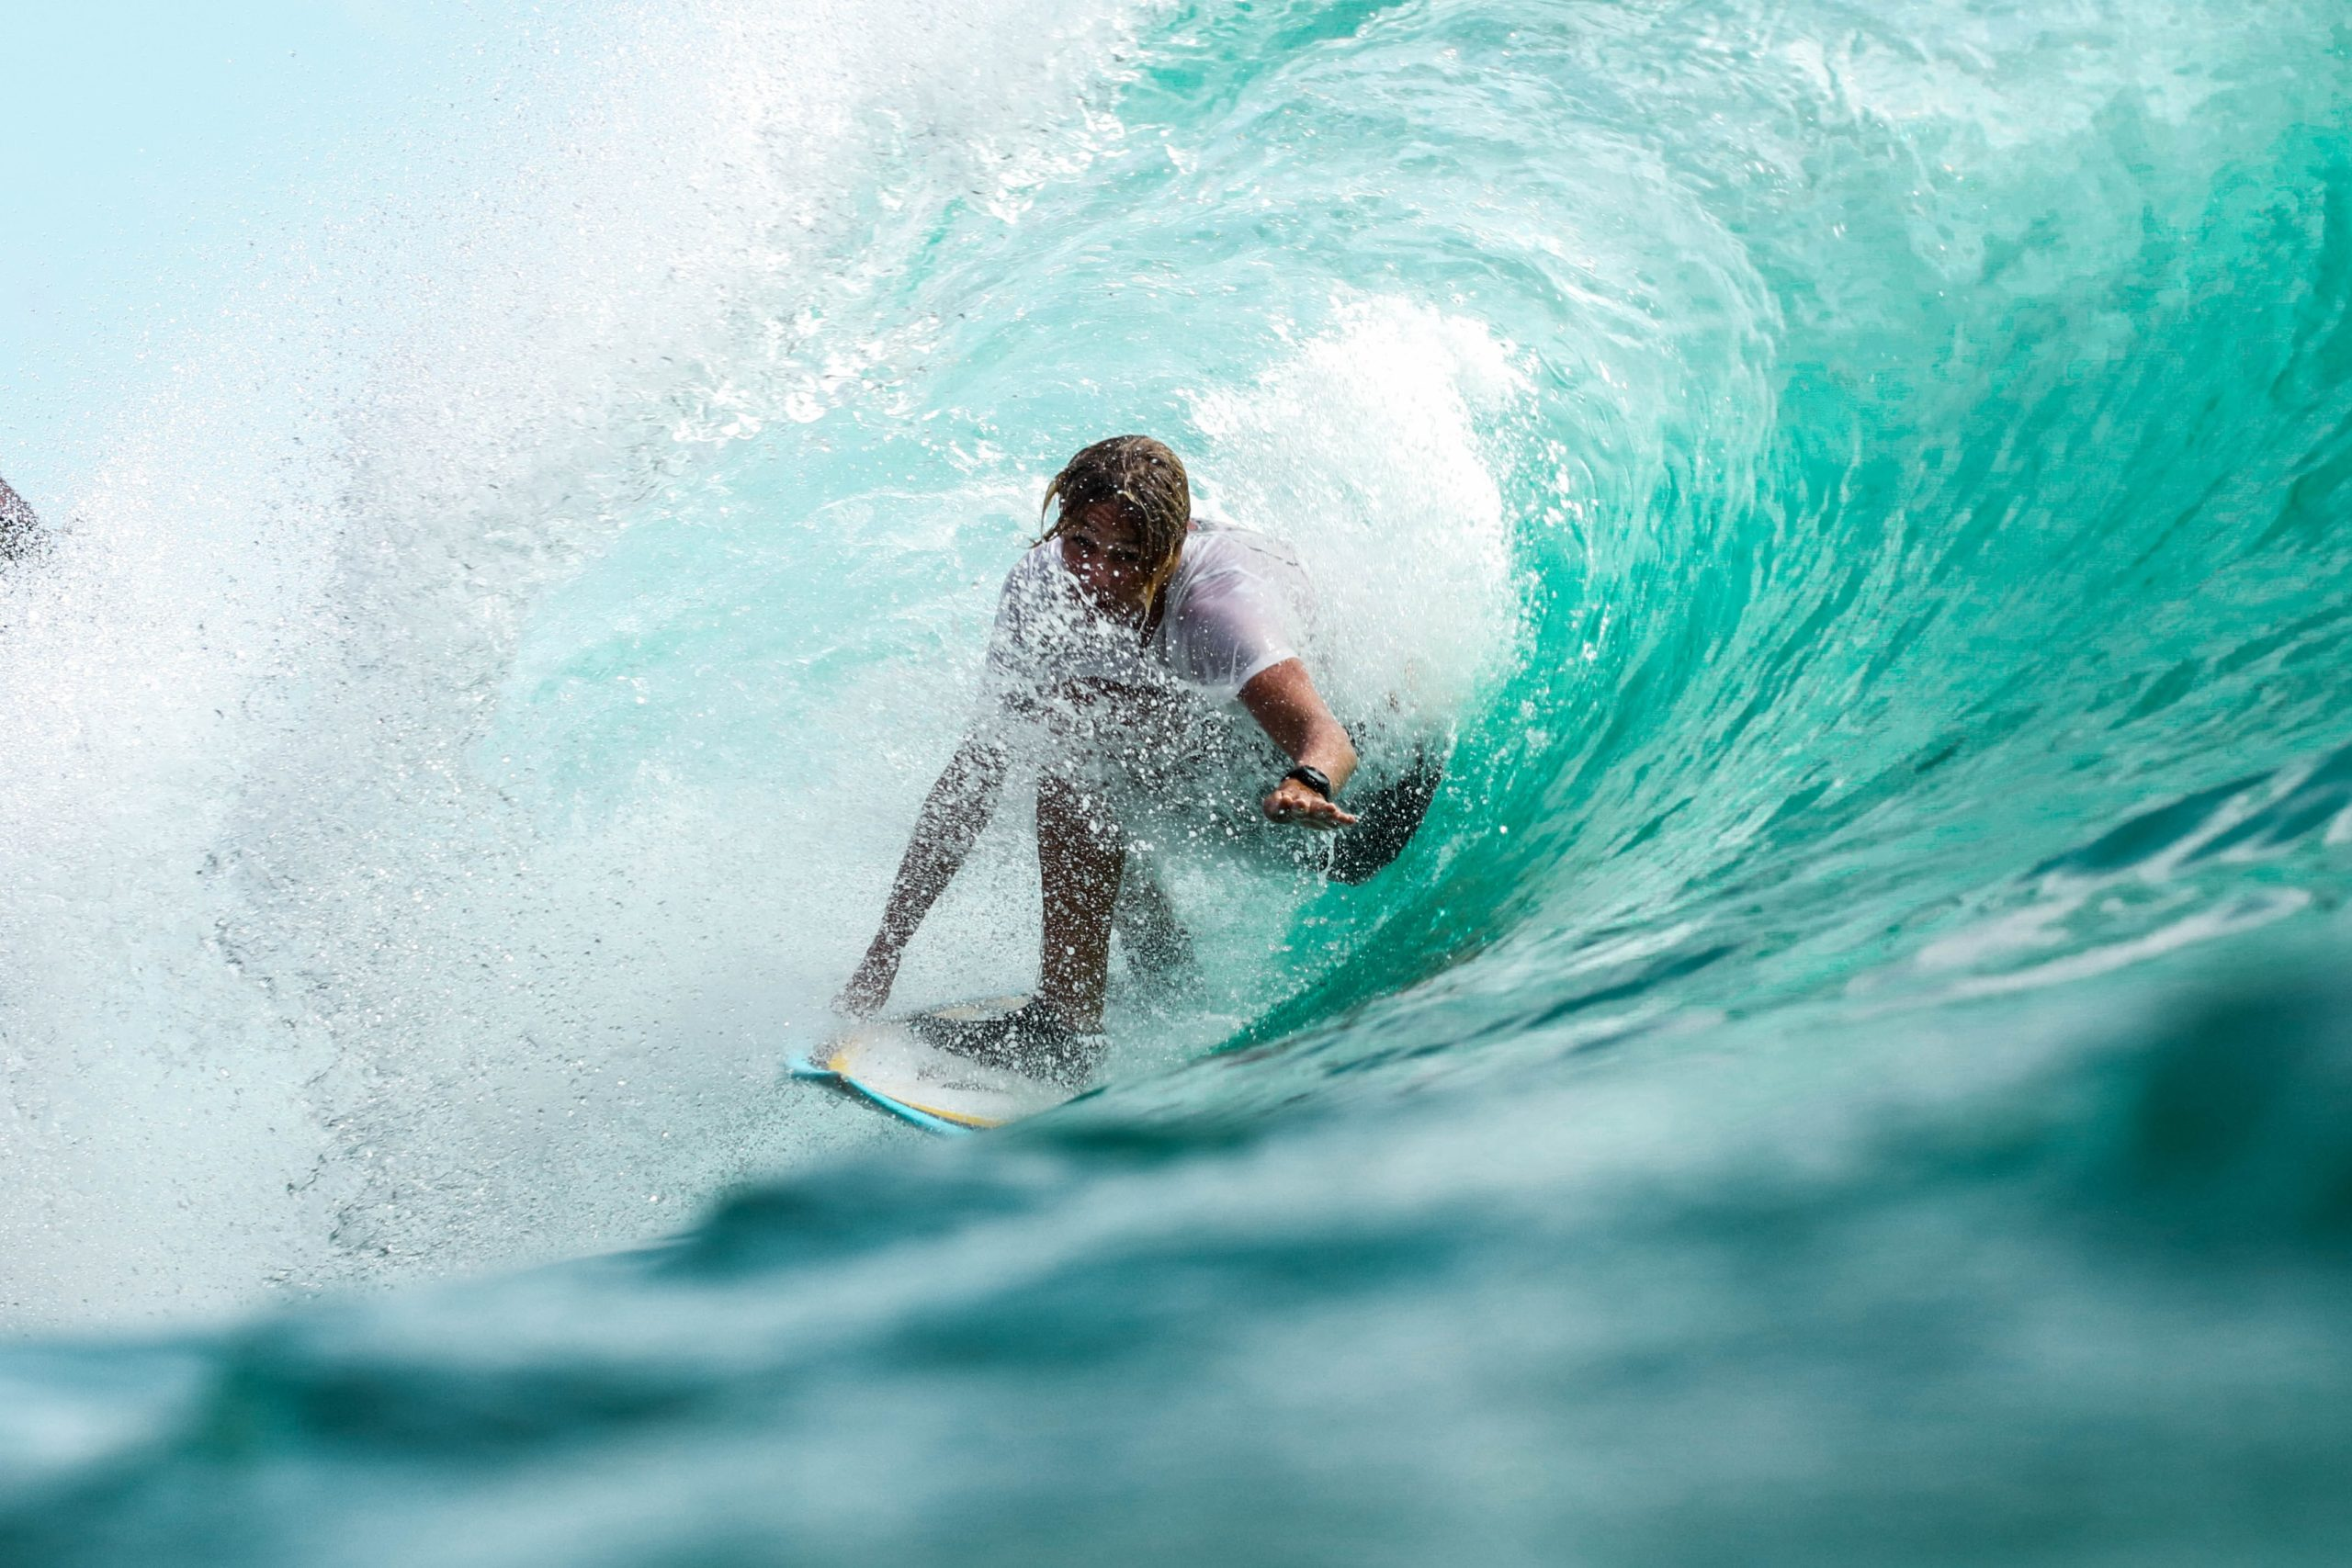 Learning How To Surf - Pro Surfing Champions